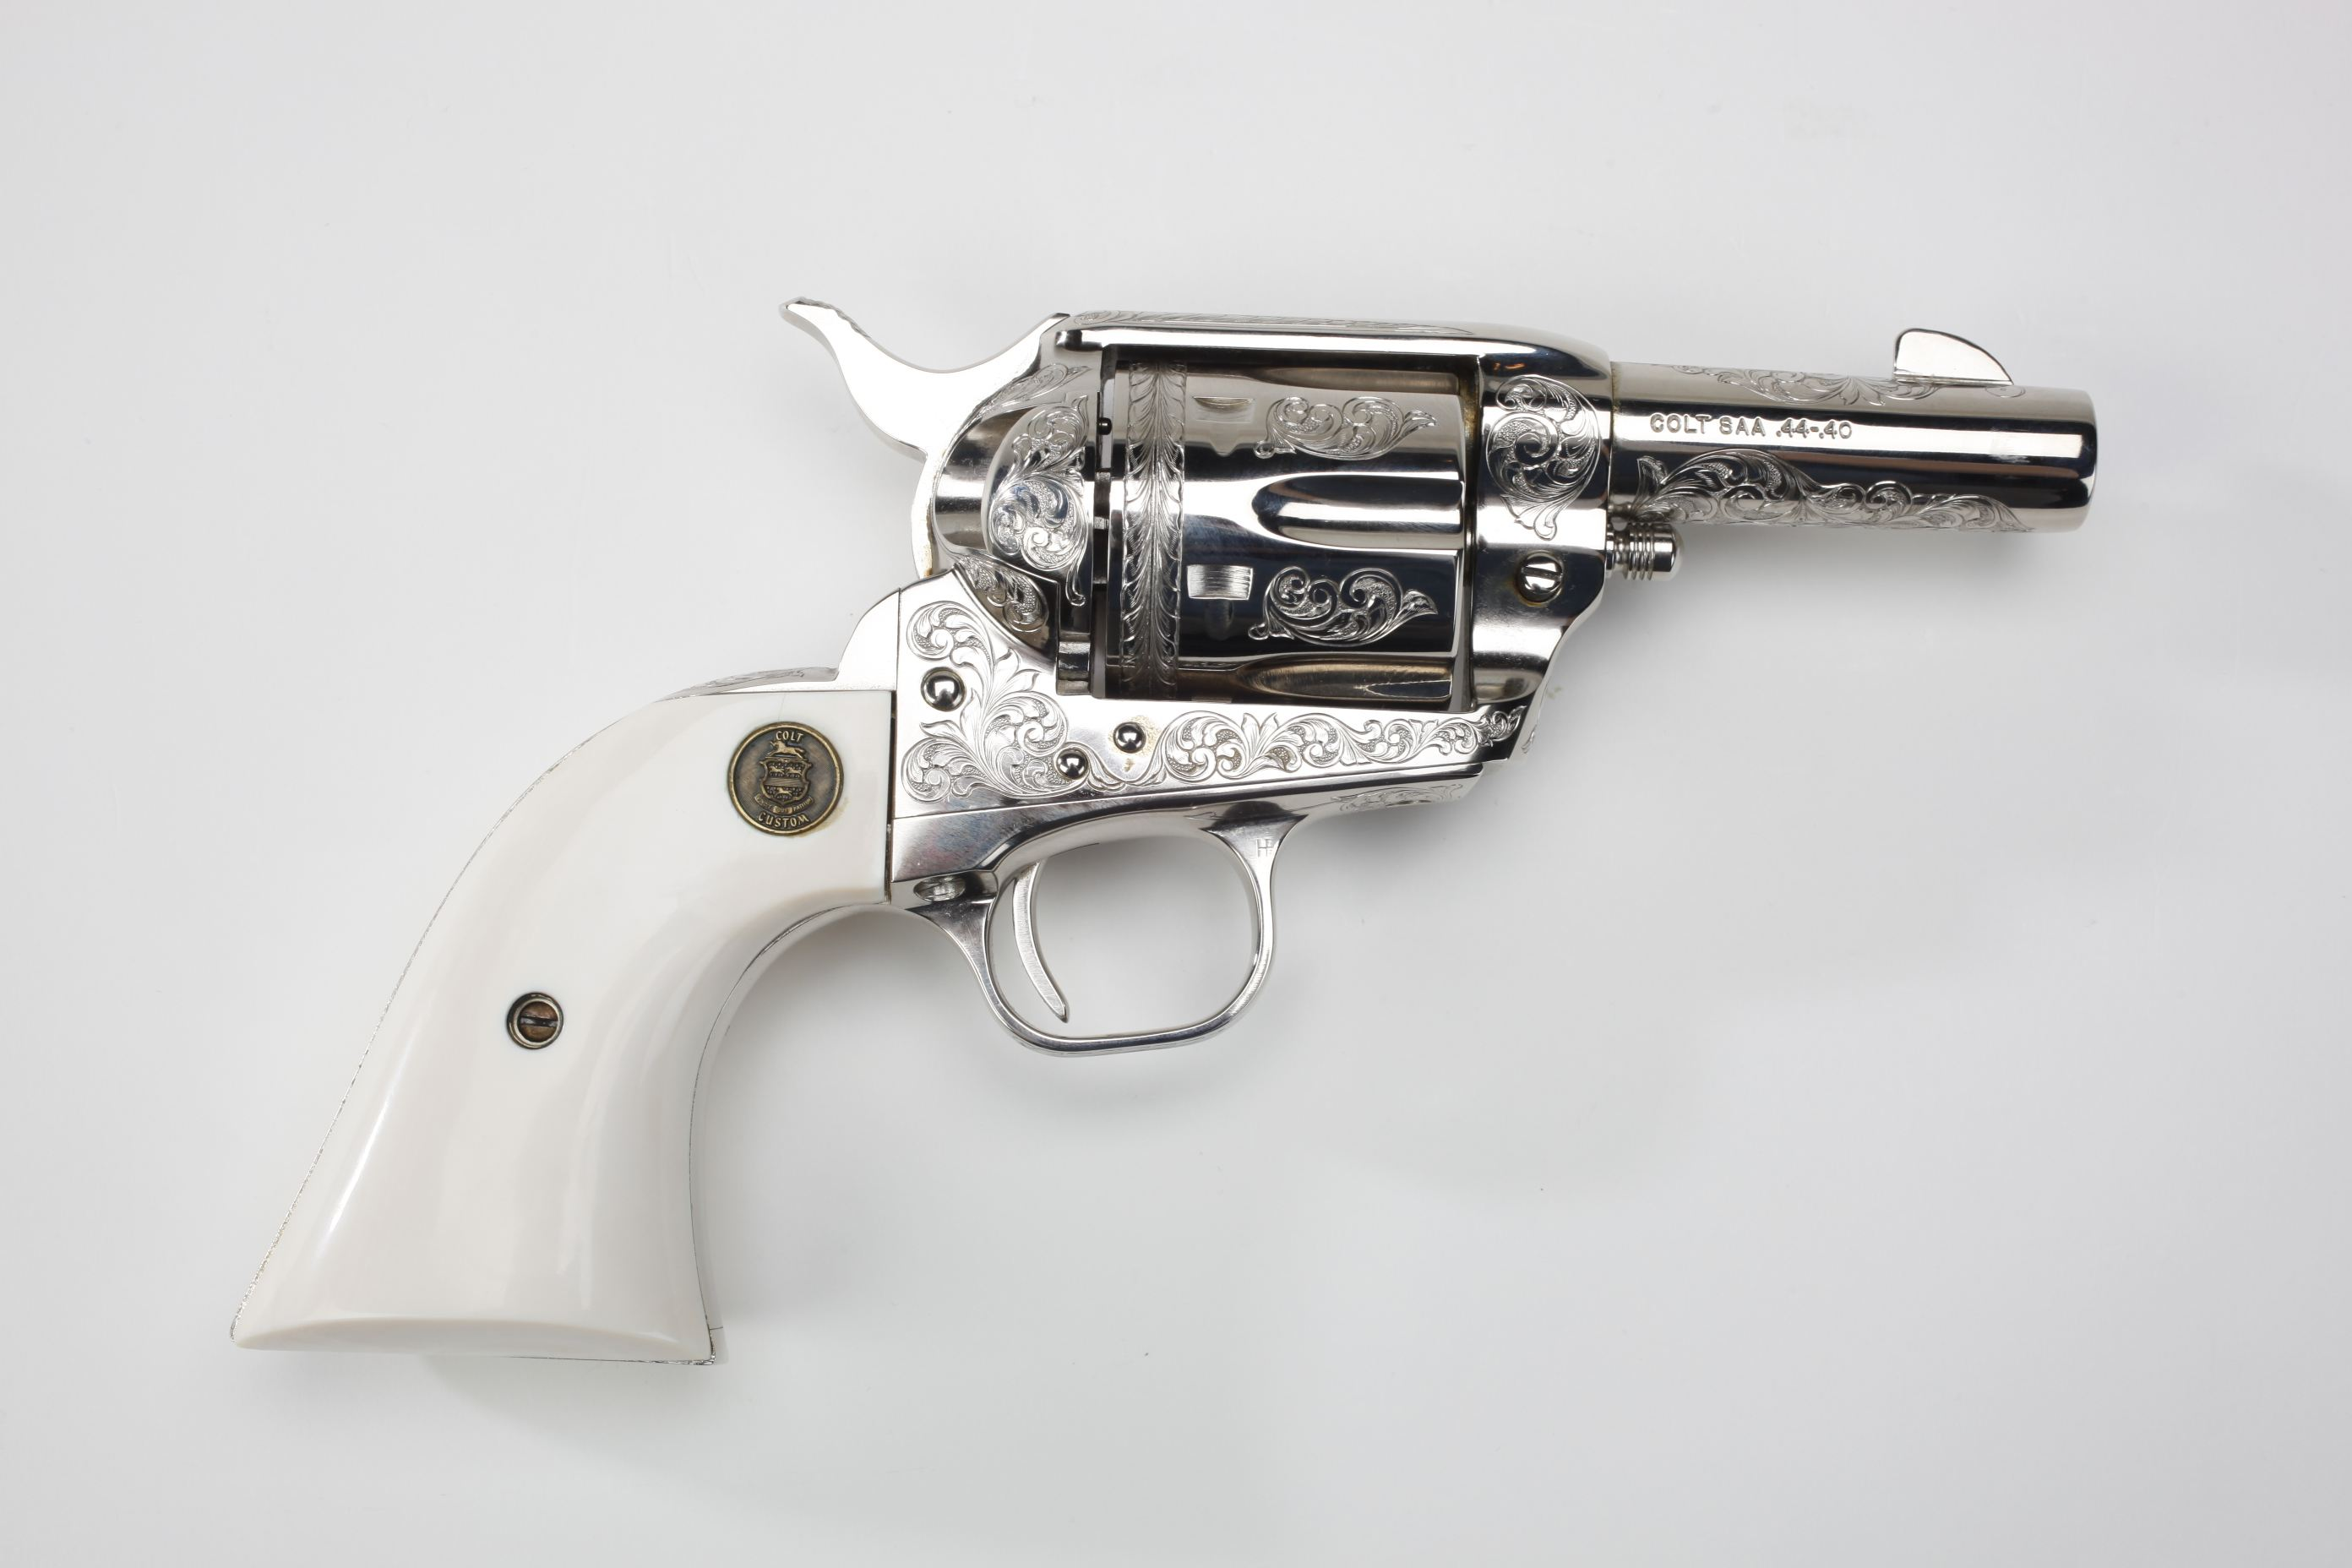 Colt Single Action Army Revolver (Sheriff's Model) w/ ivory grip panels